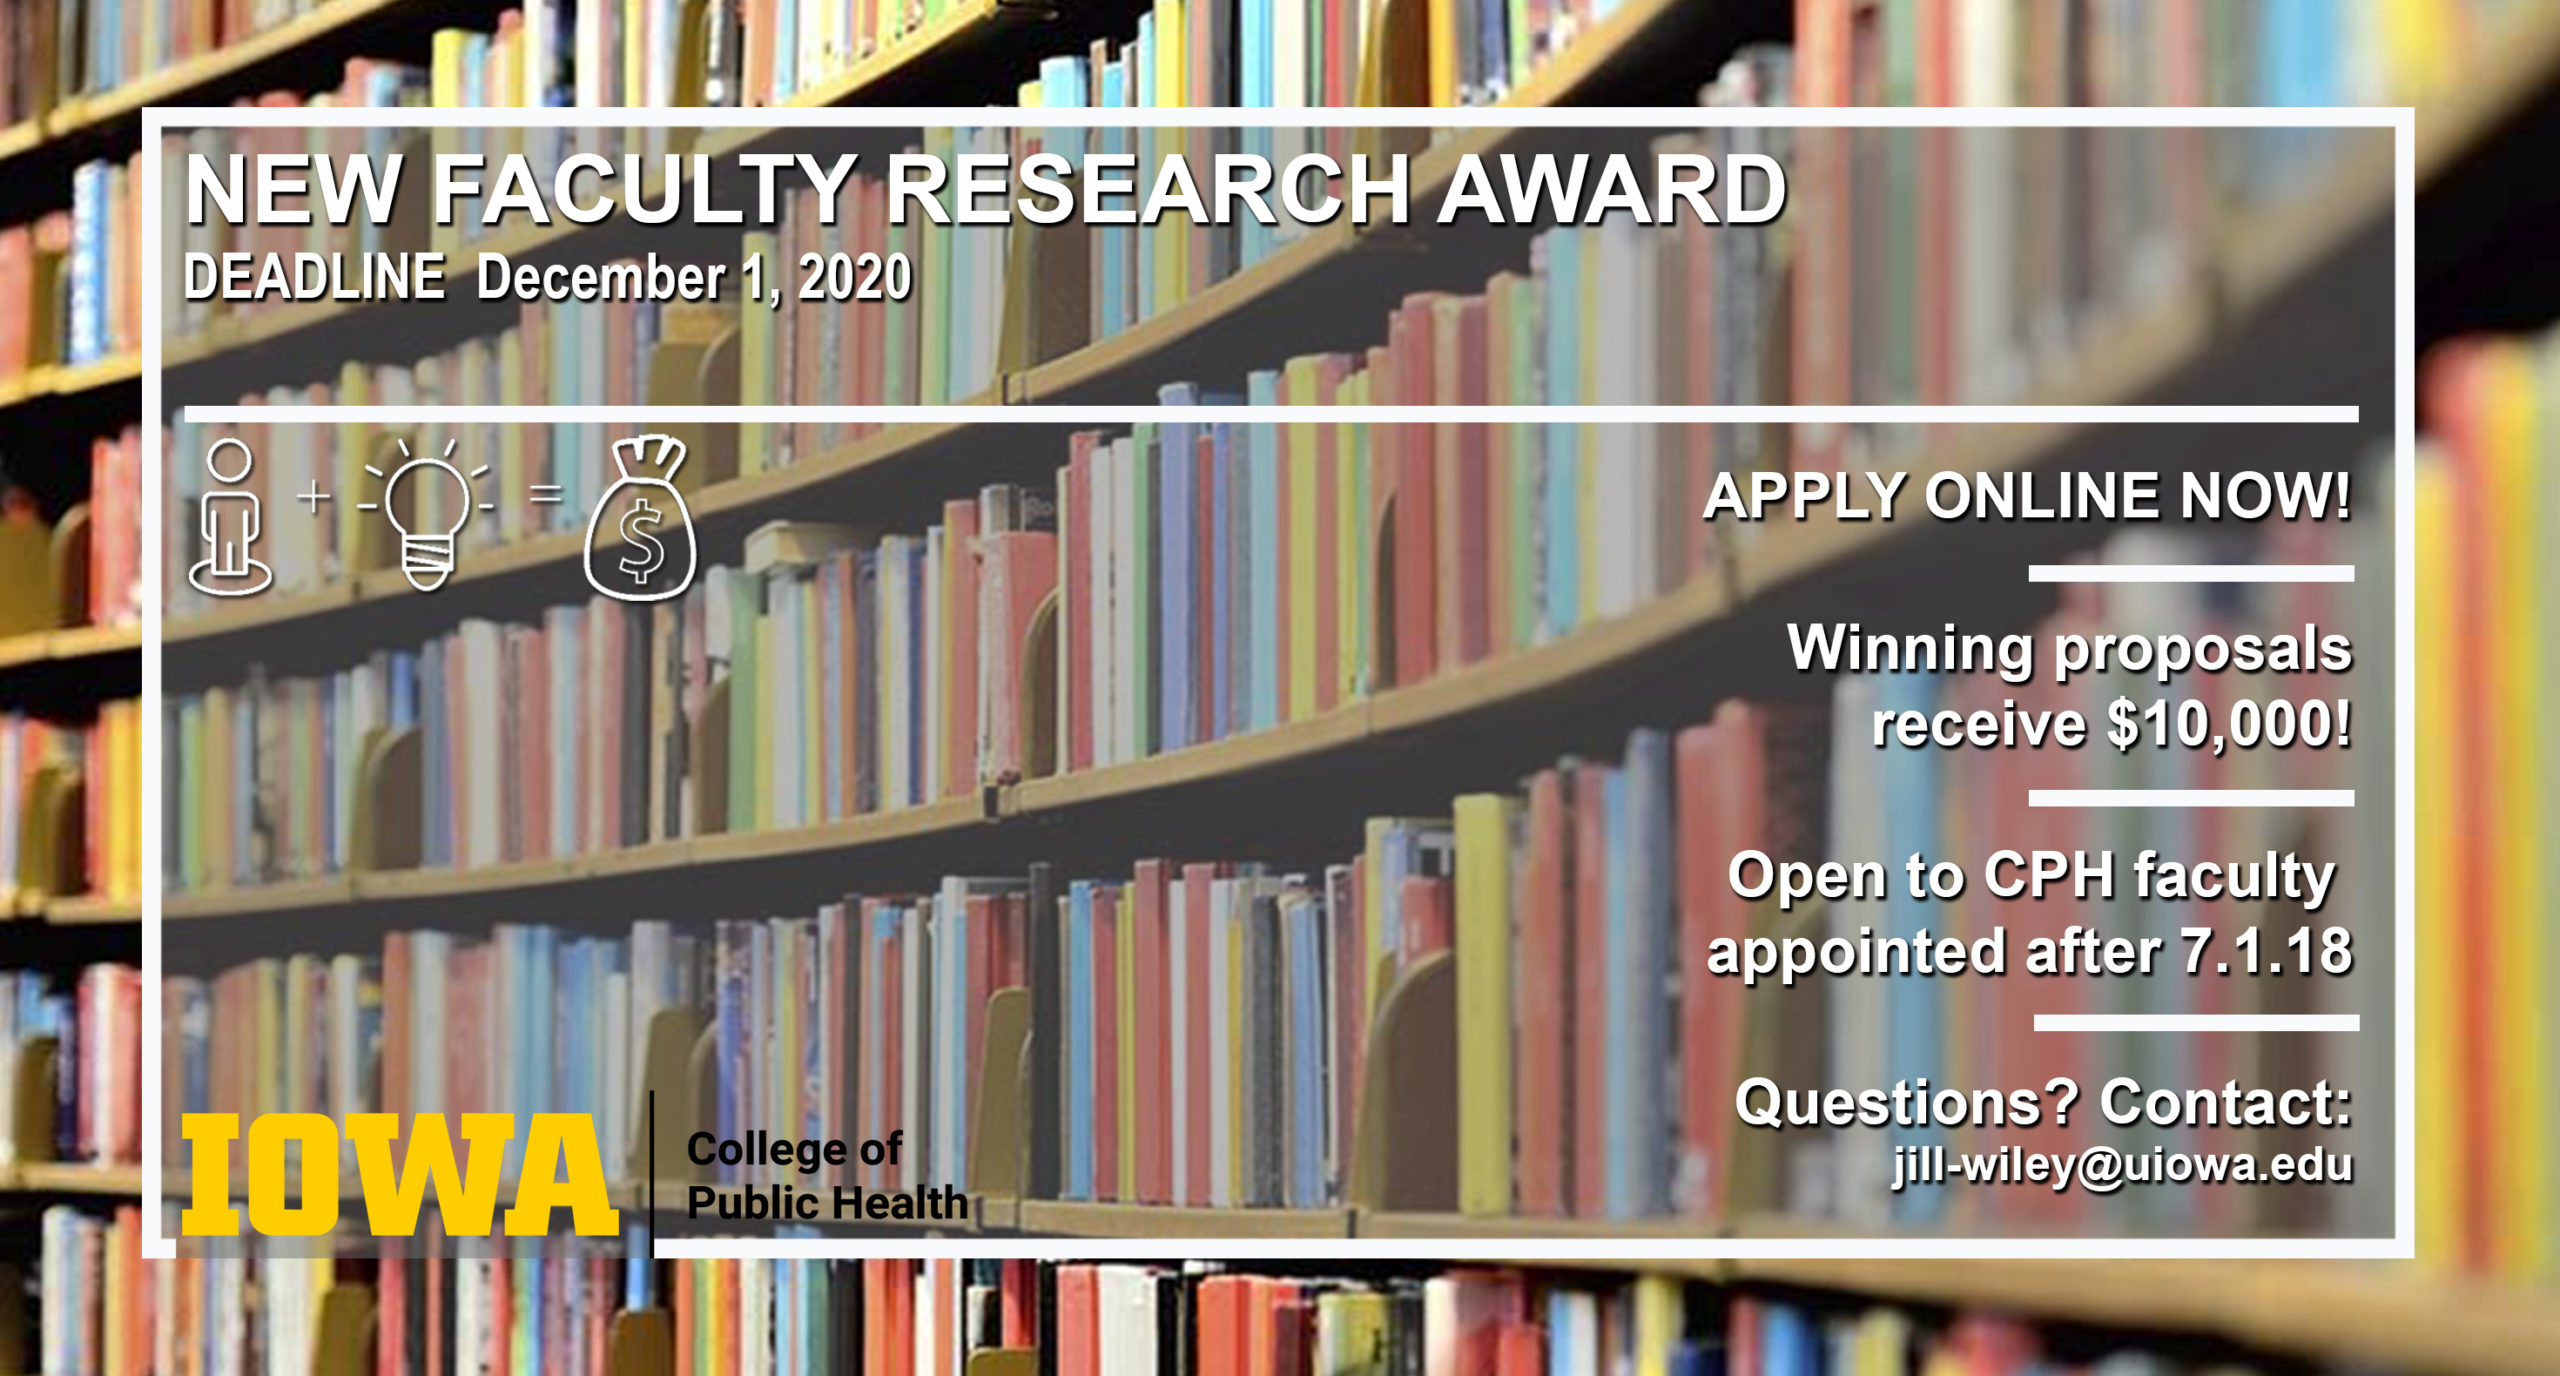 New Faculty Research Award Application Deadline is Dec. 1, 2020. Winning proposals receive $10,000. Open to faculty appointed after July 1, 2018